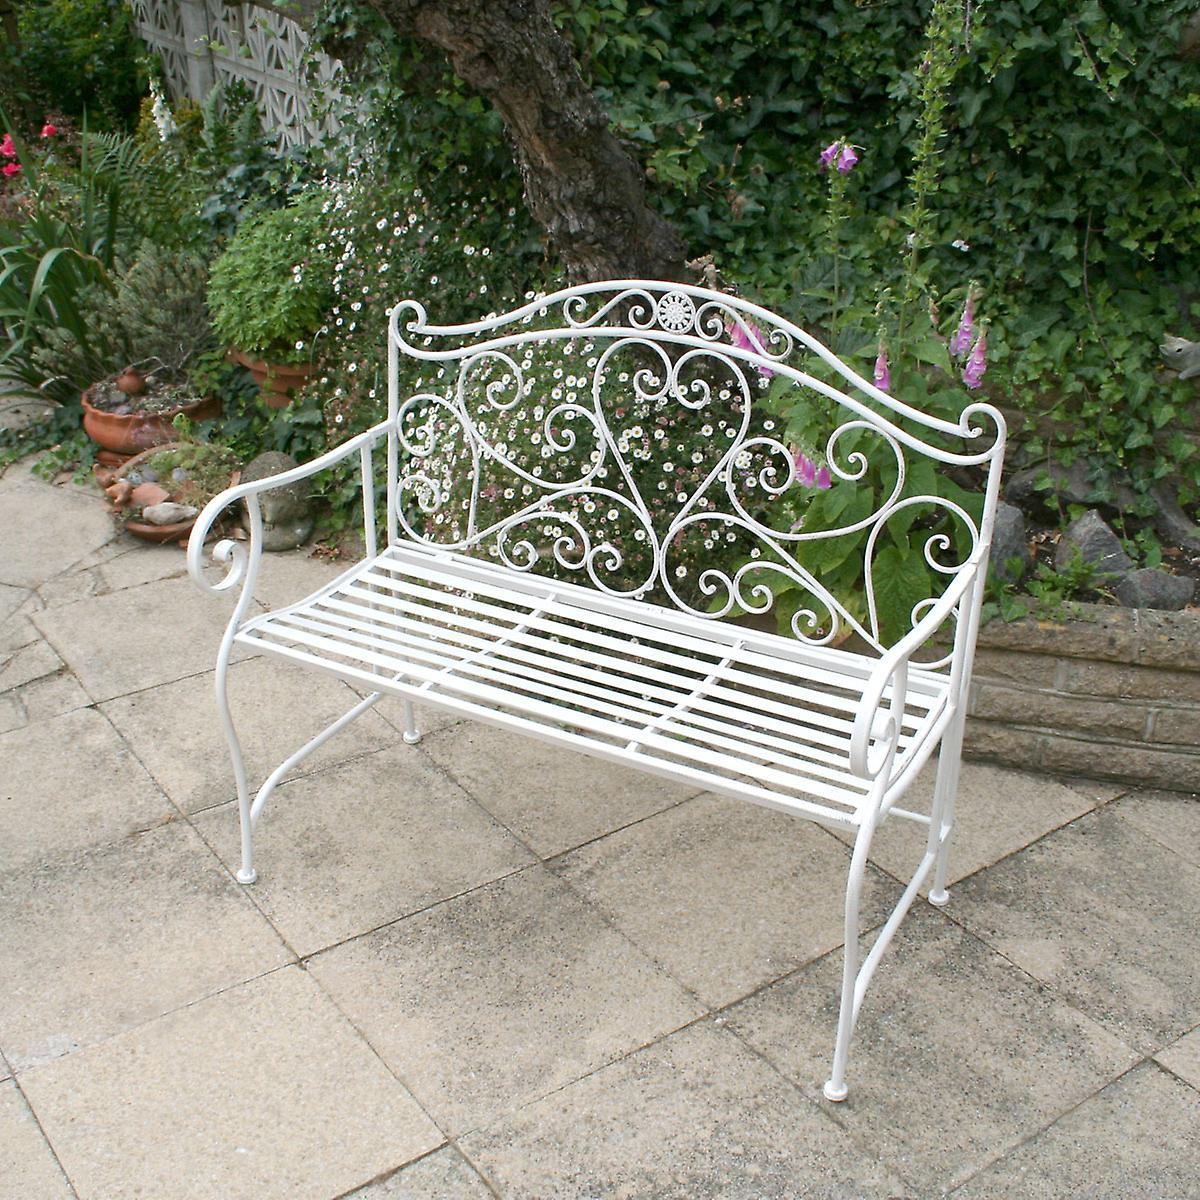 white metal outdoor furniture. Bentley Garden Heart-Shaped 2 Seater Wrought Iron Ornamented Bench Metal Outdoor Seat - Distressed White Furniture